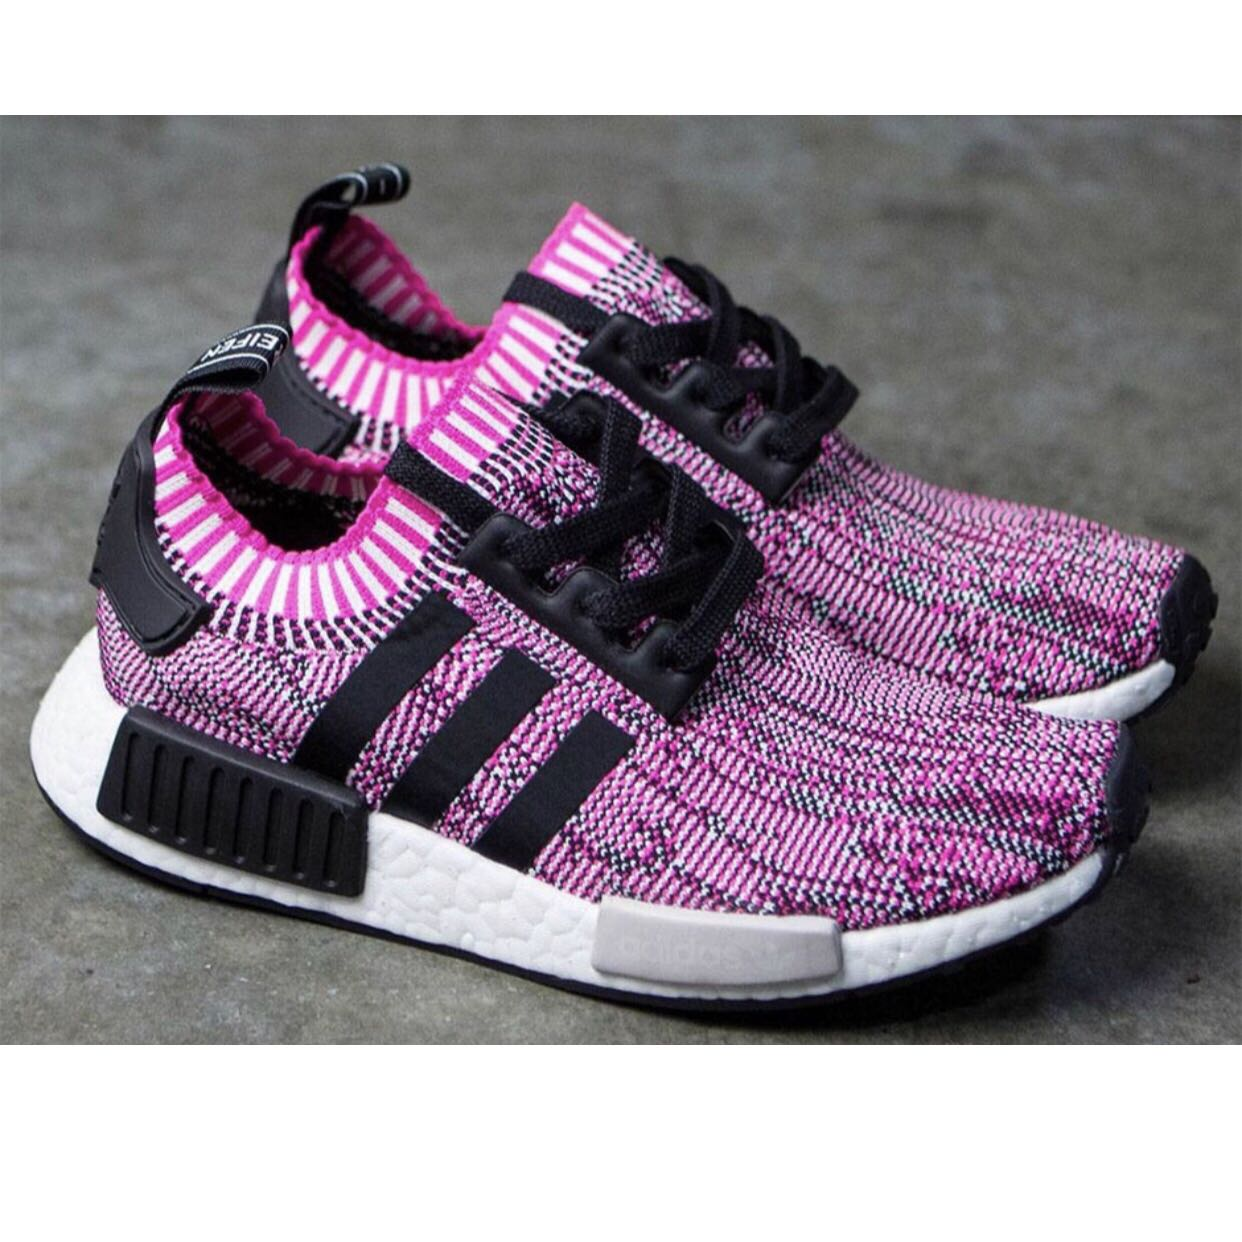 db95776be18ee Adidas NMD R1 Primeknit Rose Pink AUTHENTIC